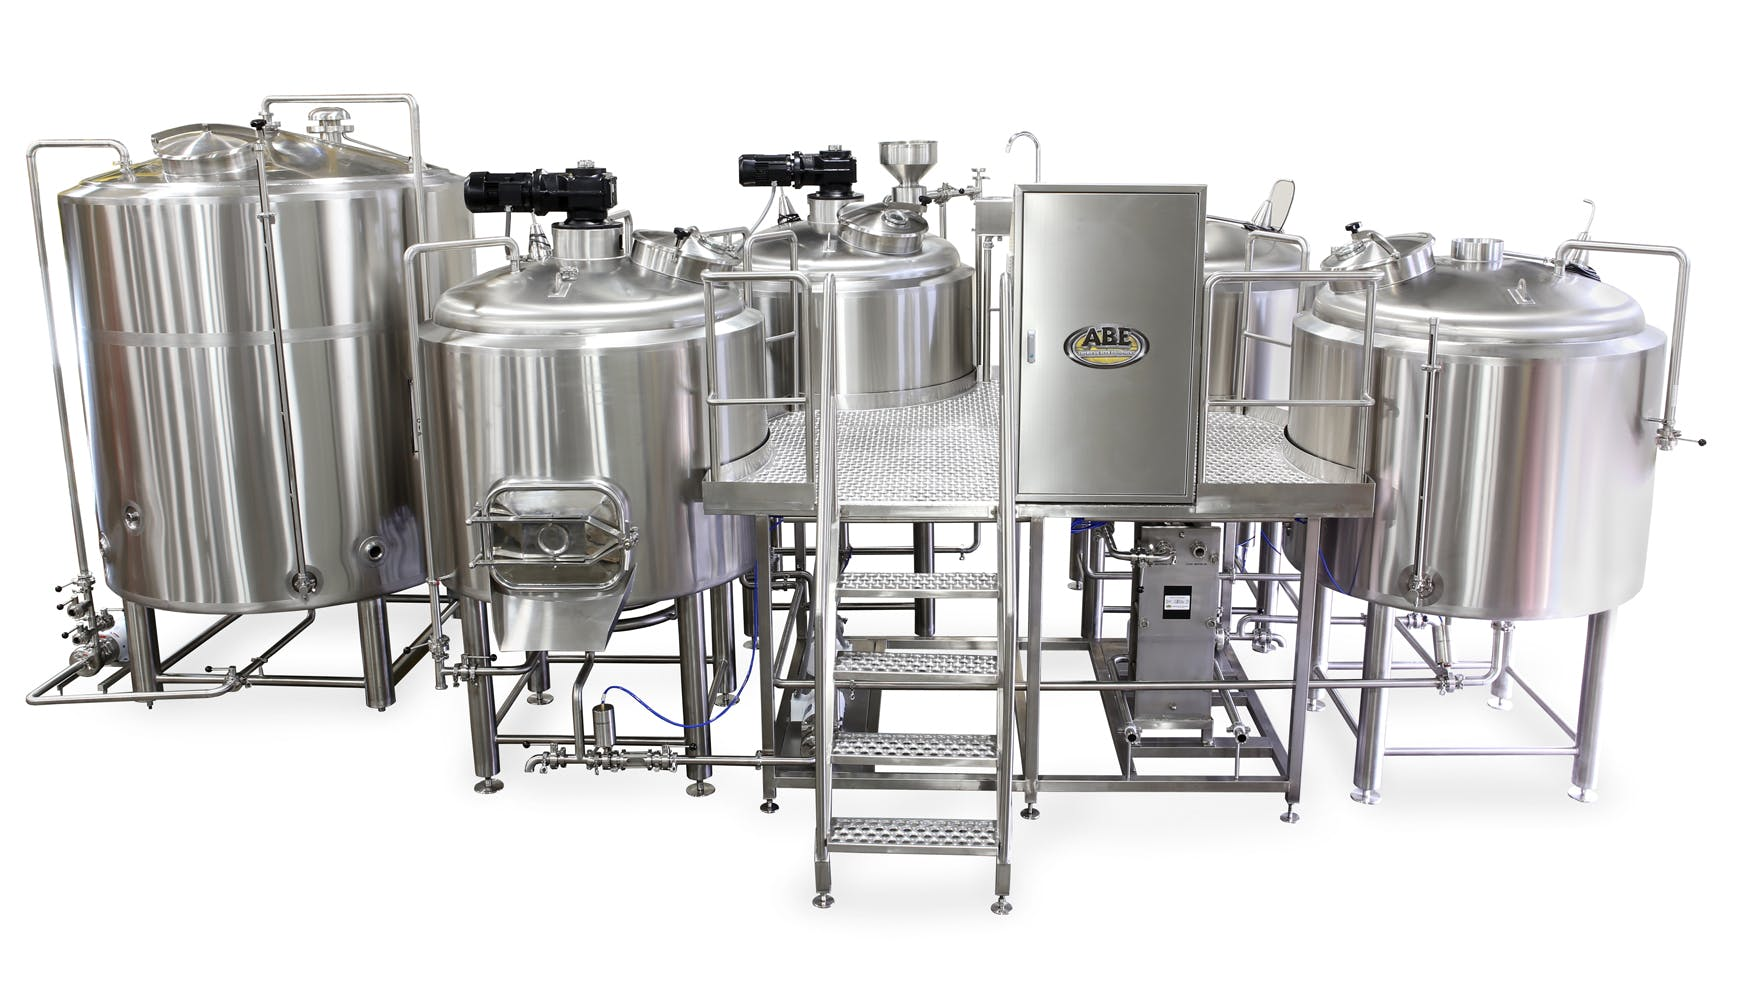 15 bbl 4 vessel Brewhouse  Brewhouse sold by American Beer Equipment